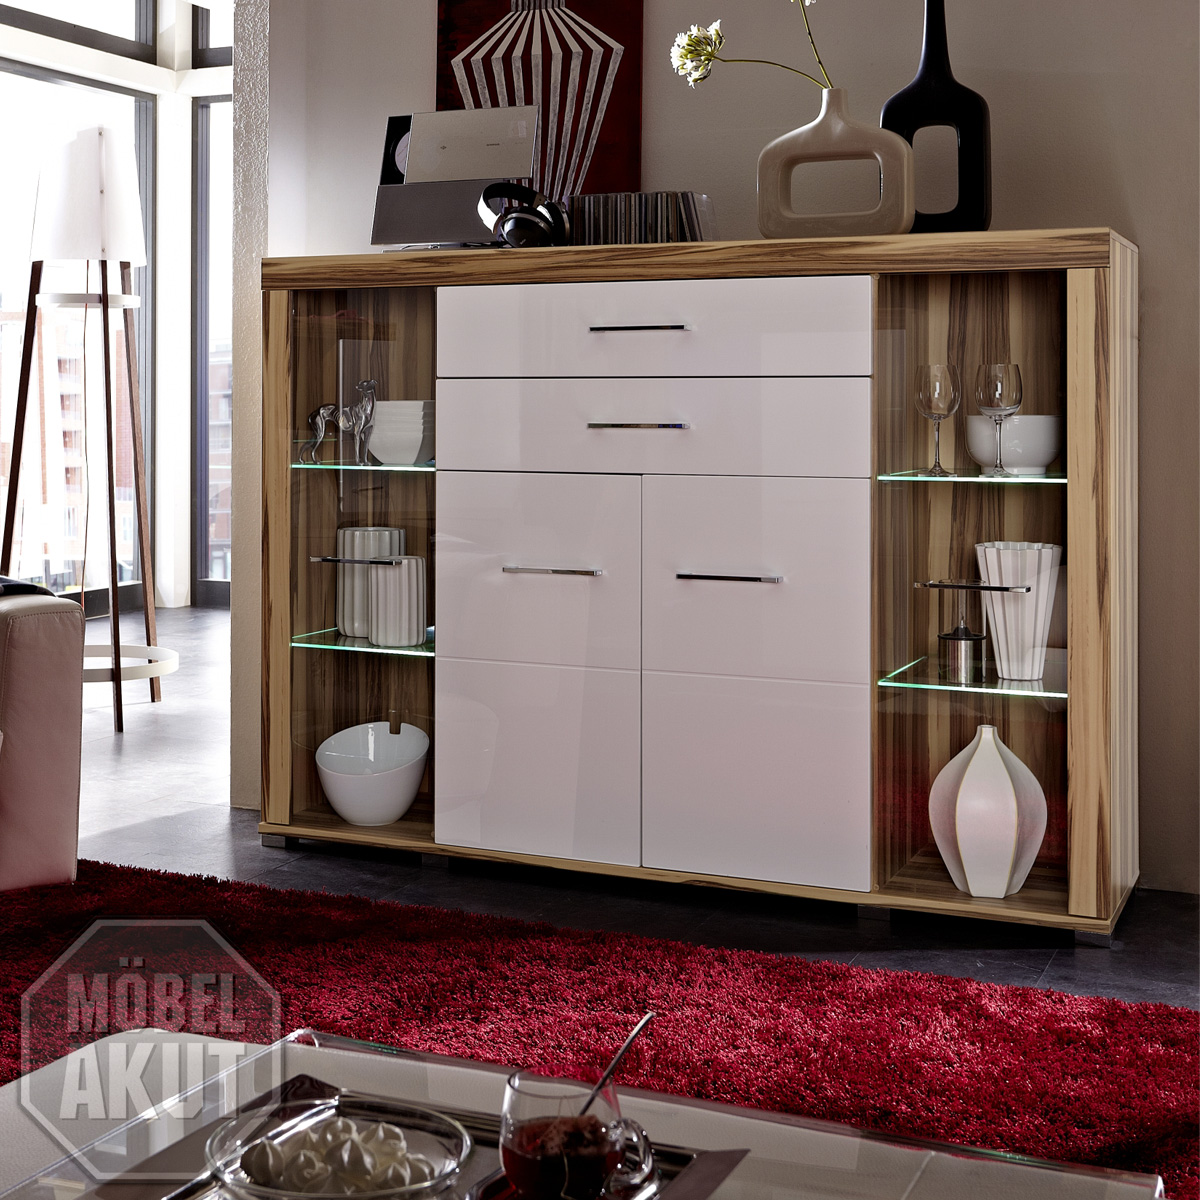 highboard zento in mdf wei hochglanz inkl led neu ebay. Black Bedroom Furniture Sets. Home Design Ideas